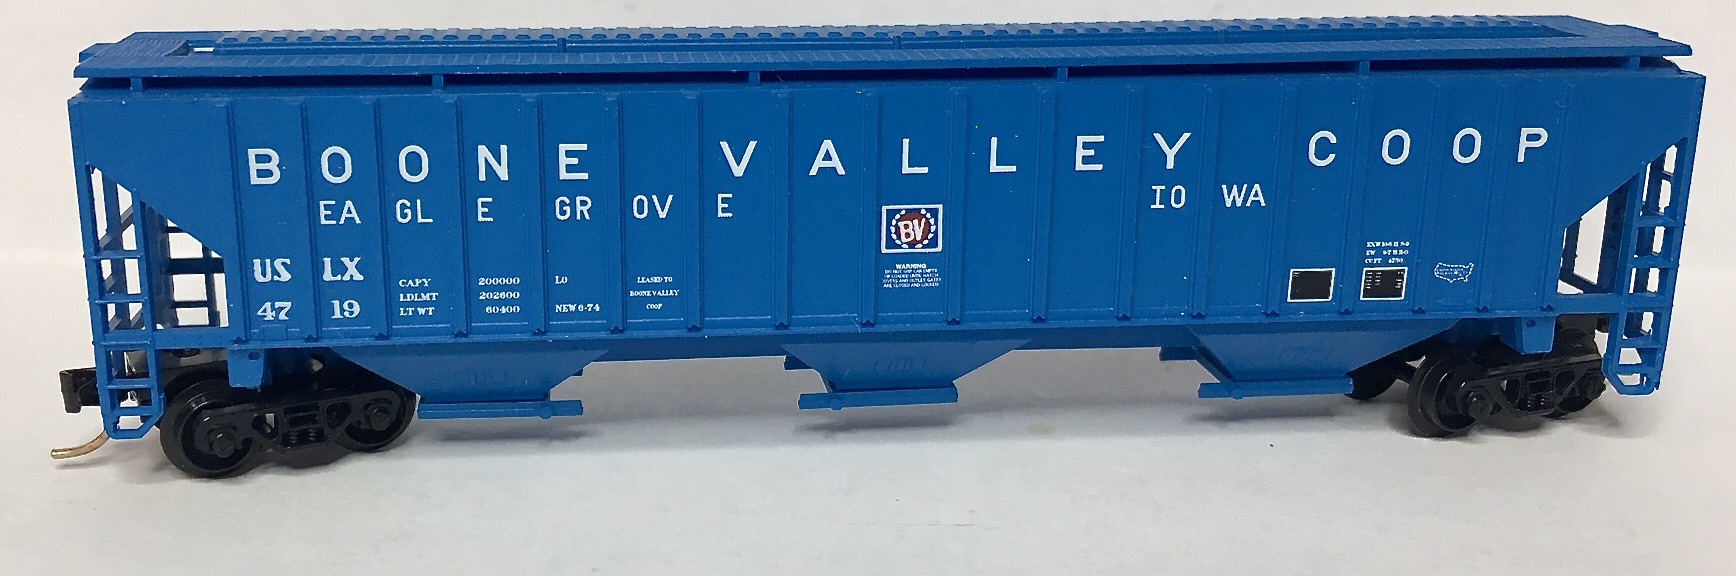 N Scale - Red Caboose - RN-15606-(  ) - Covered Hopper, 3-Bay, PS2-CD 4750 - Boone Valley Coop - 4719